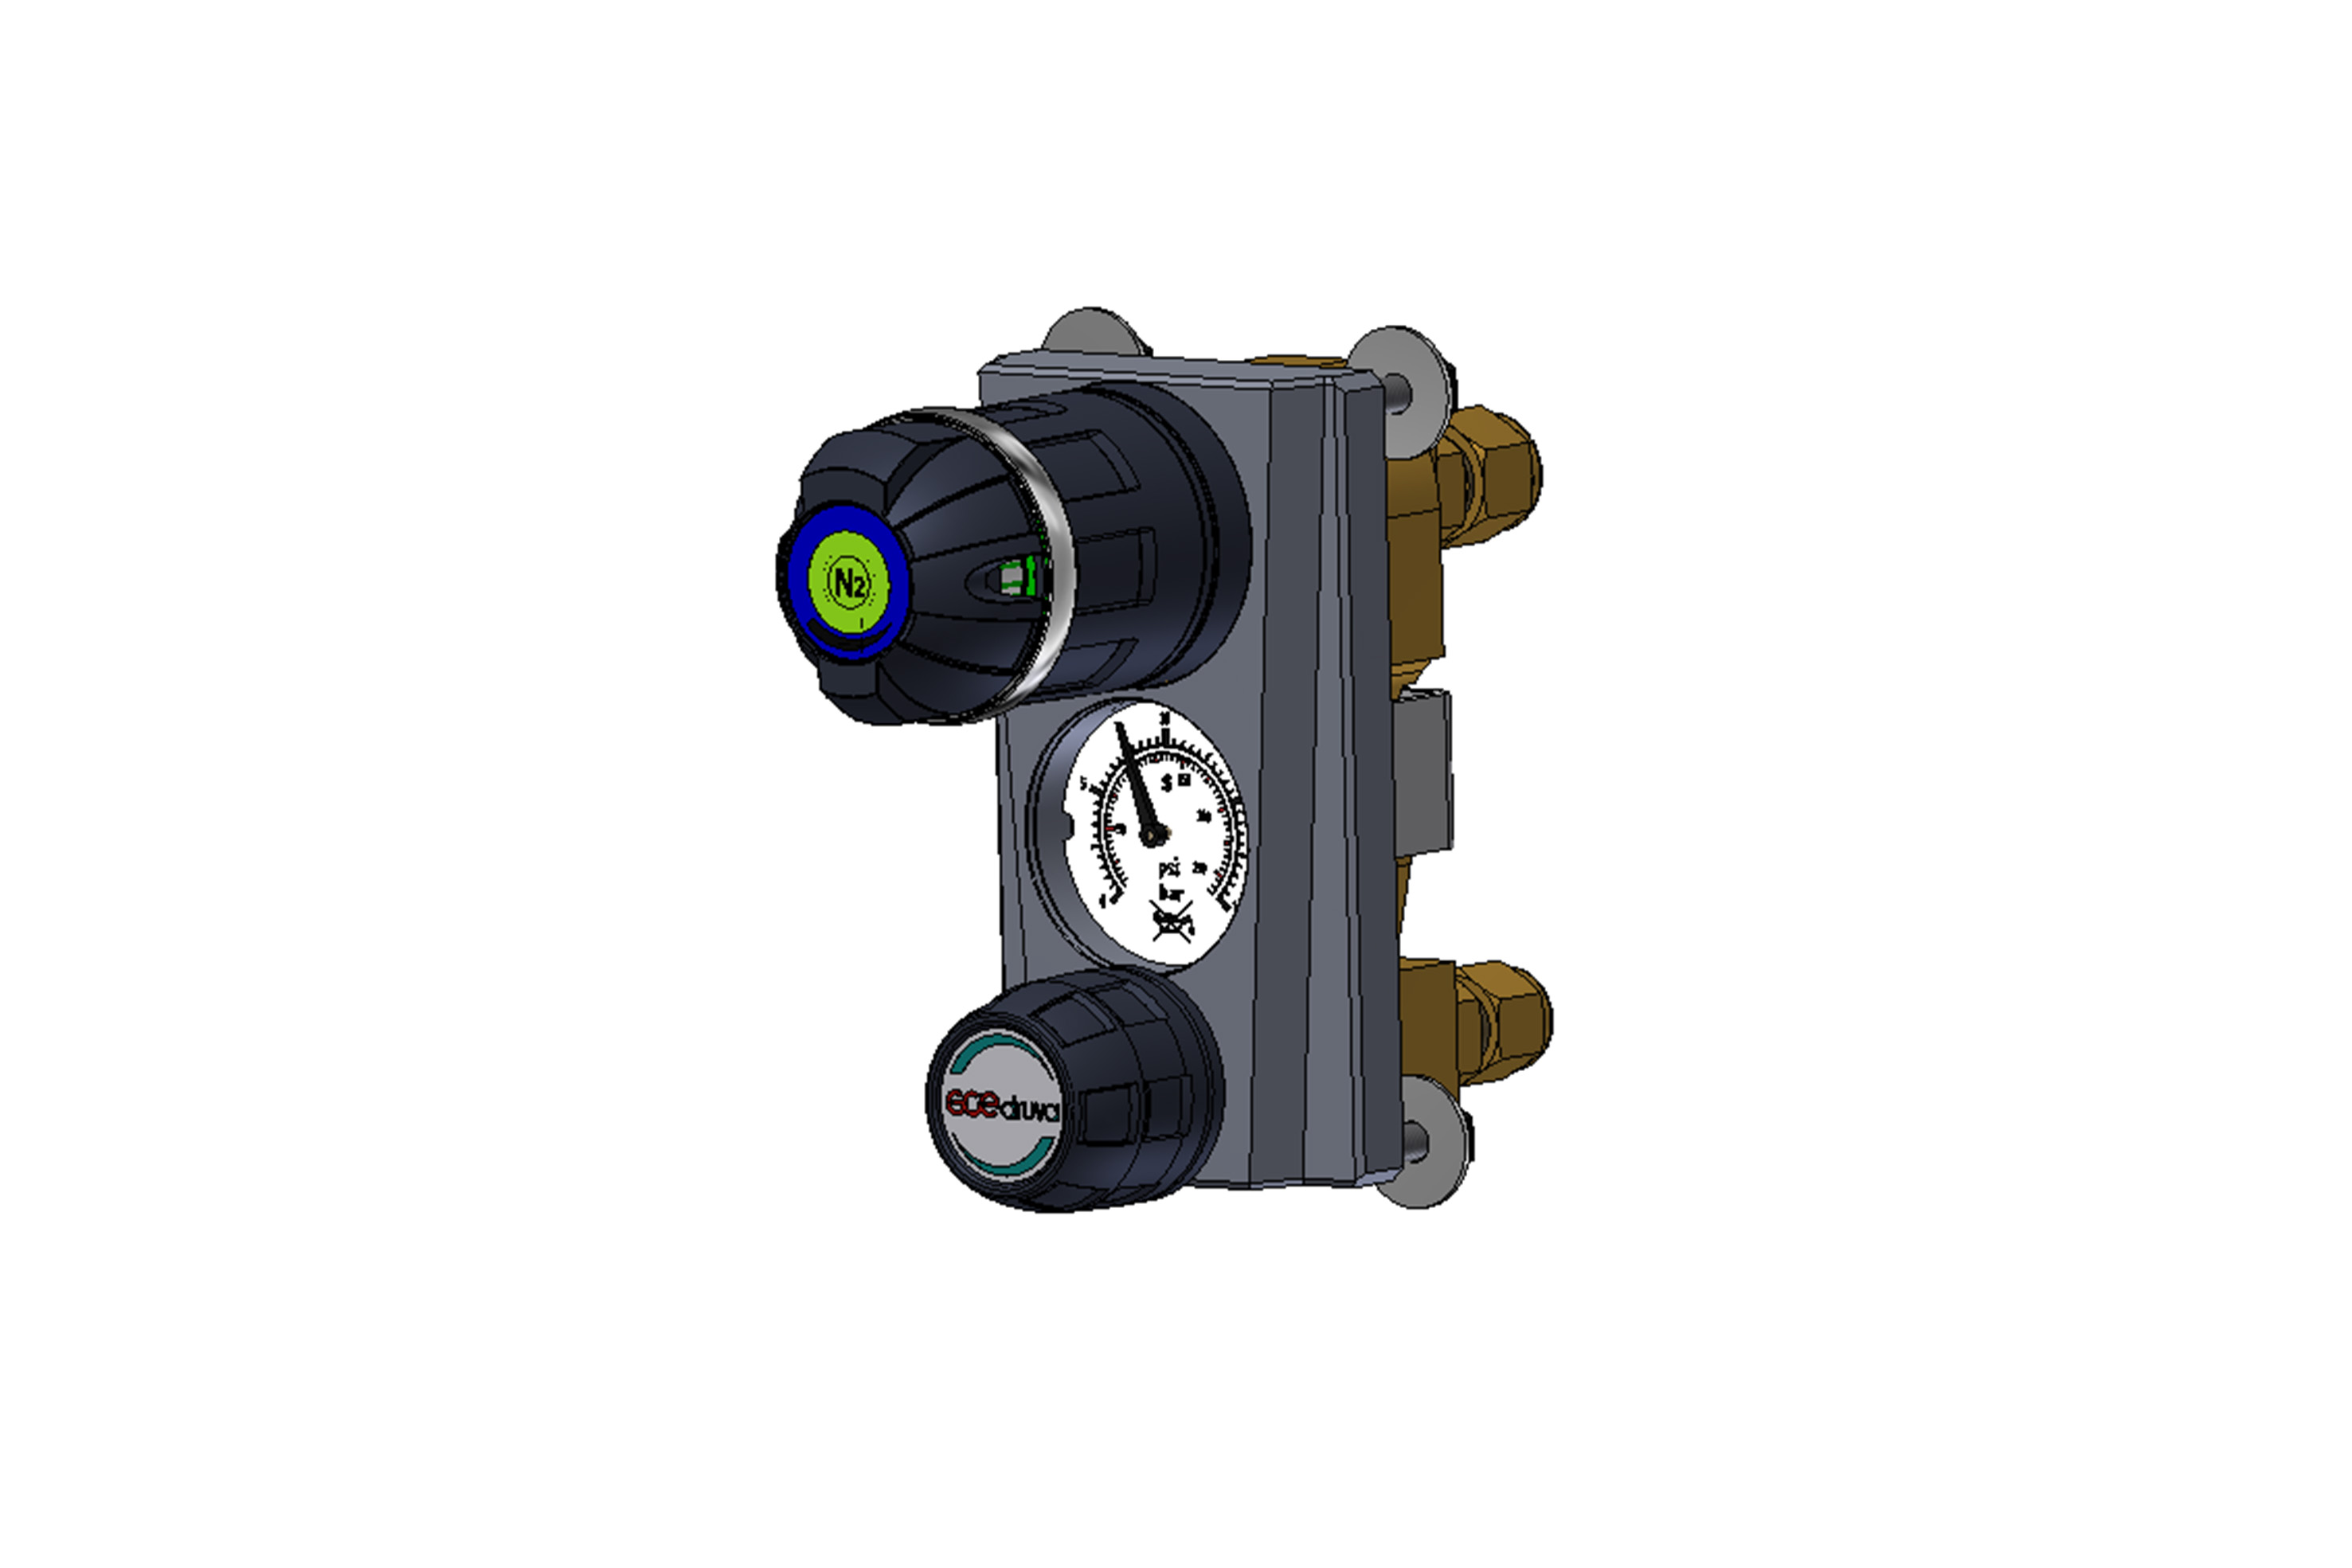 LABORATORY PRESSURE REGULATORS EMD 3100 - BUILT-IN VERSIONS D AND Z page image